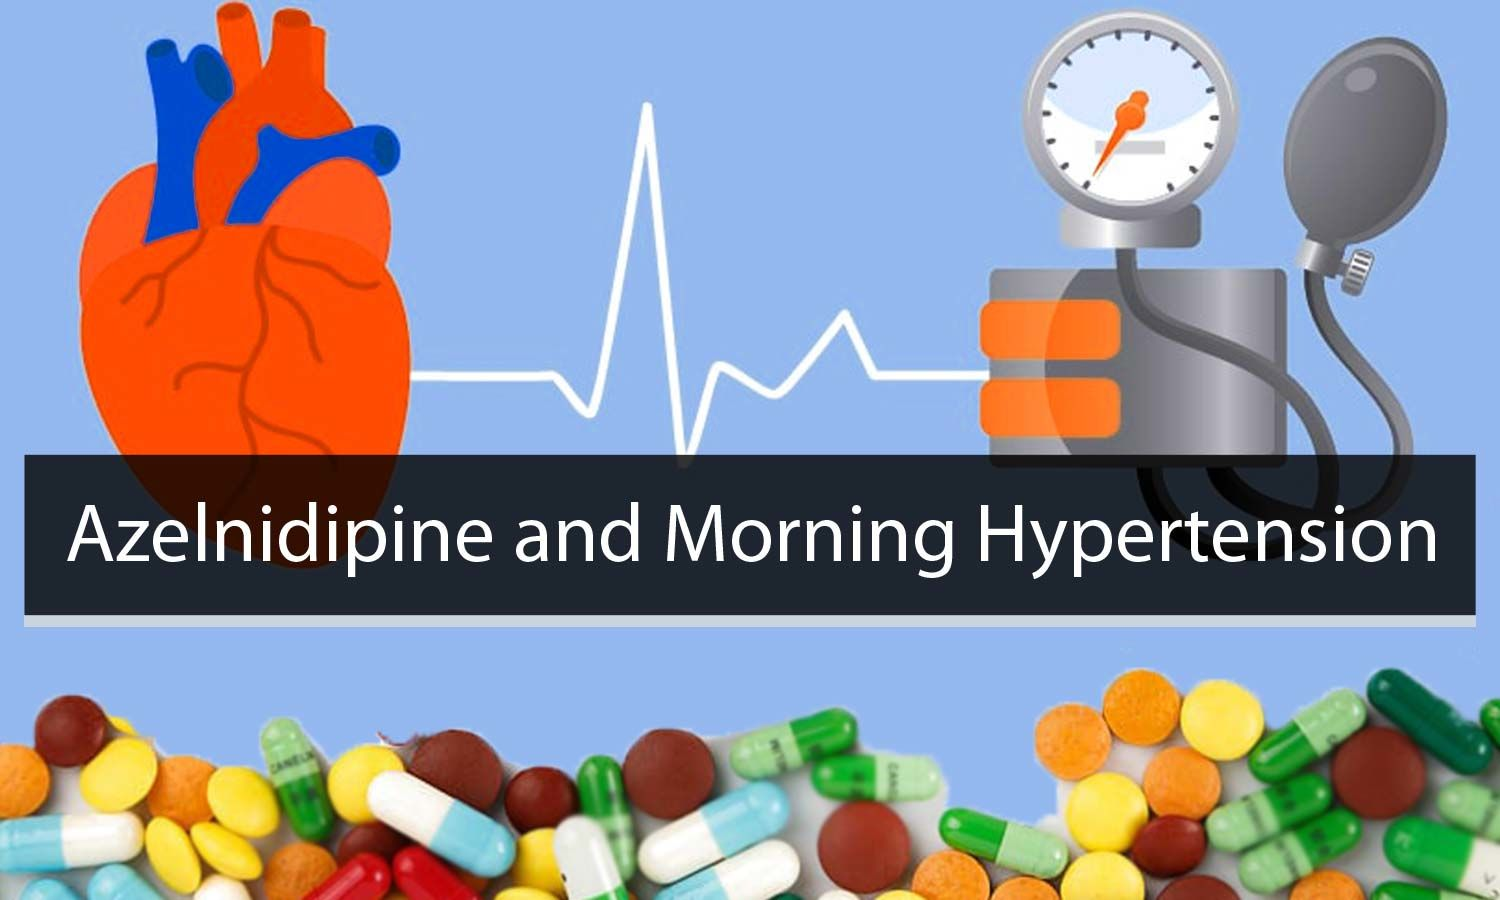 Controlling Morning Hypertension with Azelnidipine